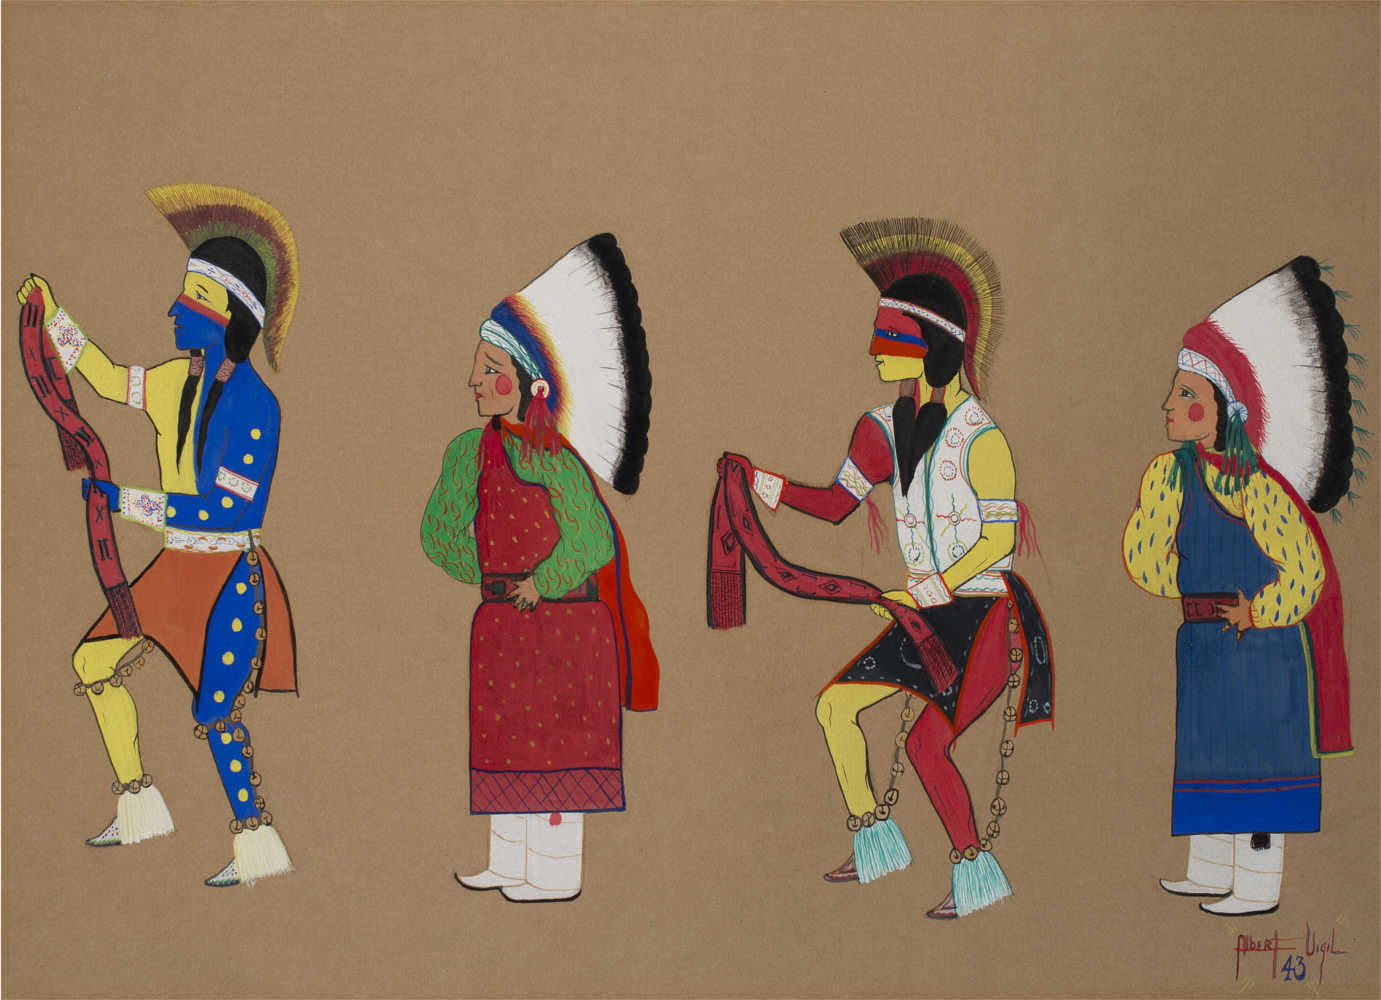 """The Heard Museum has selected new works of art for the updated exhibit, *Away From Home: American Indian Boarding School Stories*. These have been acquired since *Remembering Our Indian School Days: The Boarding School Experience* opened in 2000. Among these is Albert Vigil's (San ildefonso Pueblo) """"Belt Dancer,"""" a student painting made at age 16 at Santa Fe Indian School, 1943. Gift of Duane and Jean Humilickek. 4460-14. Image courtesy of the Heard Museum."""